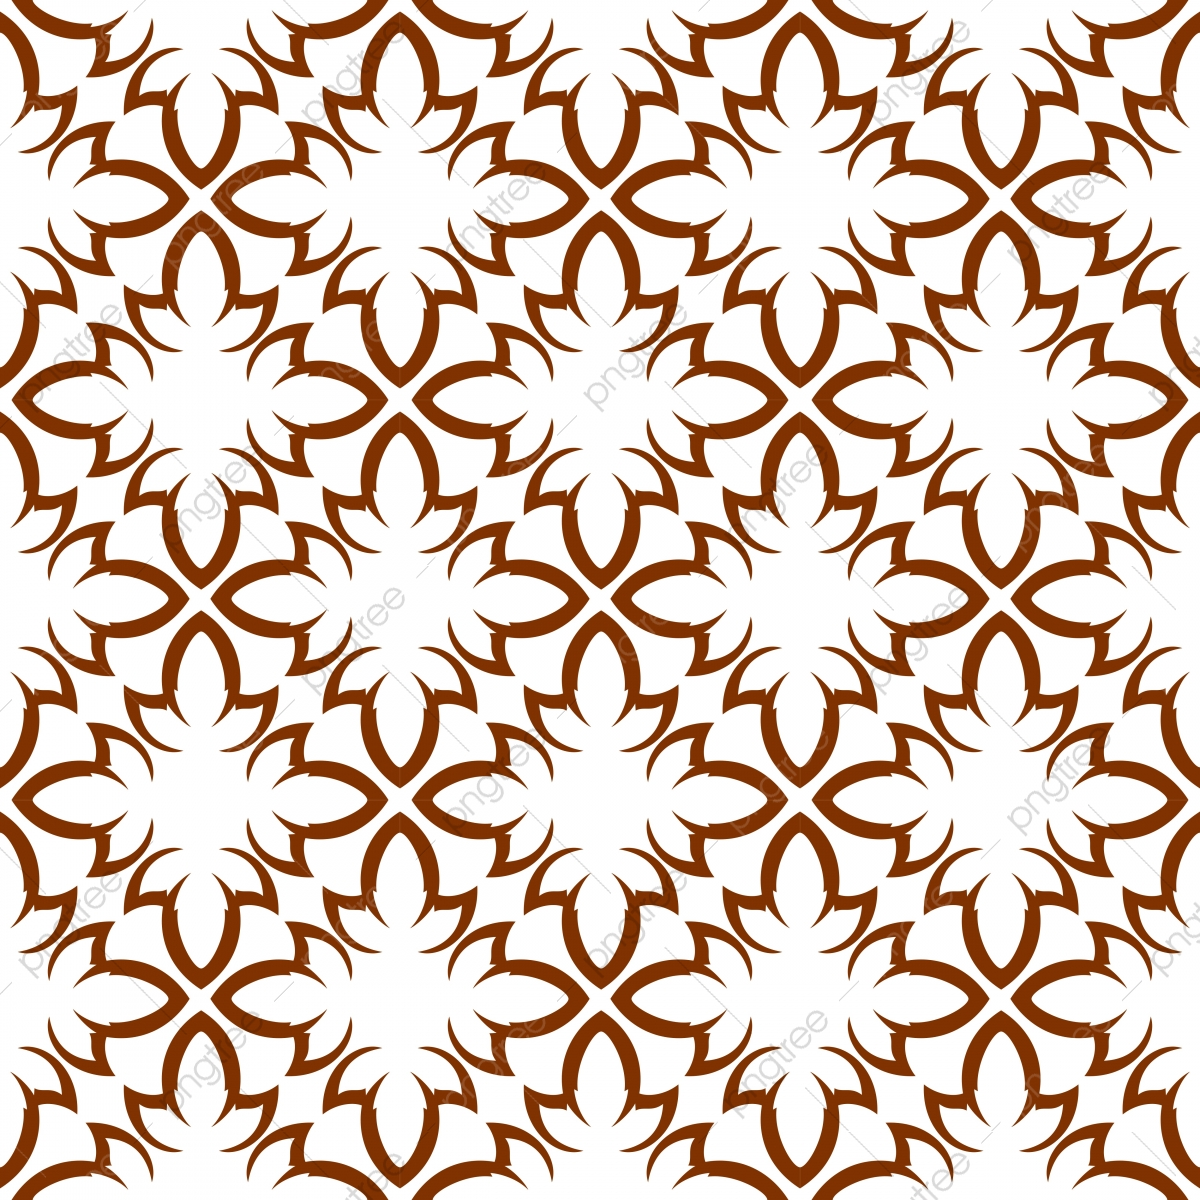 Seamless Pattern Seamless Background Simple Floral Tile